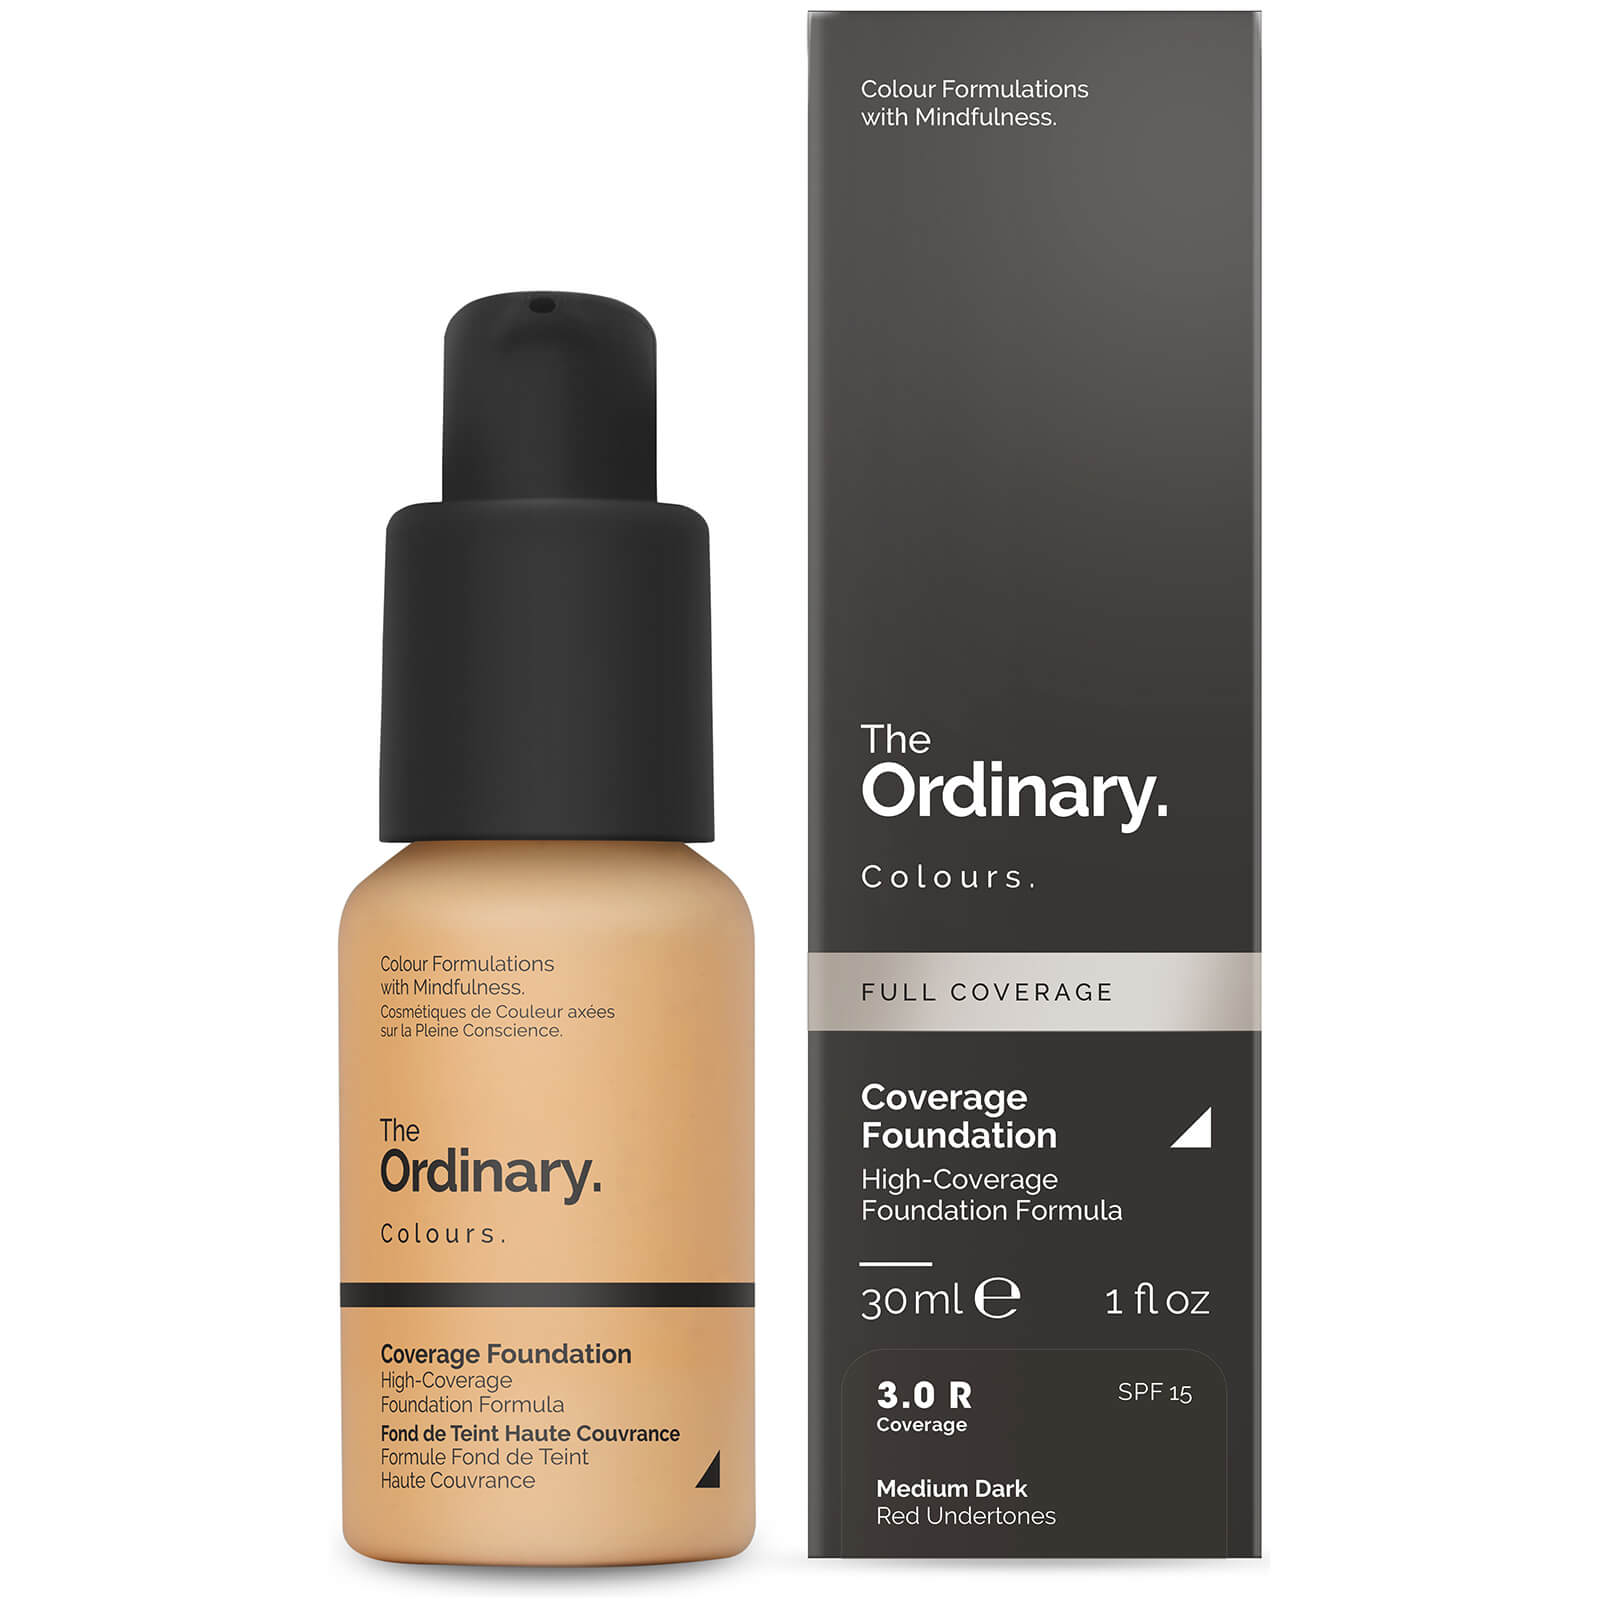 The Ordinary Coverage Foundation with SPF 15 by The Ordinary Colours 30ml (Various Shades) - 3.0R